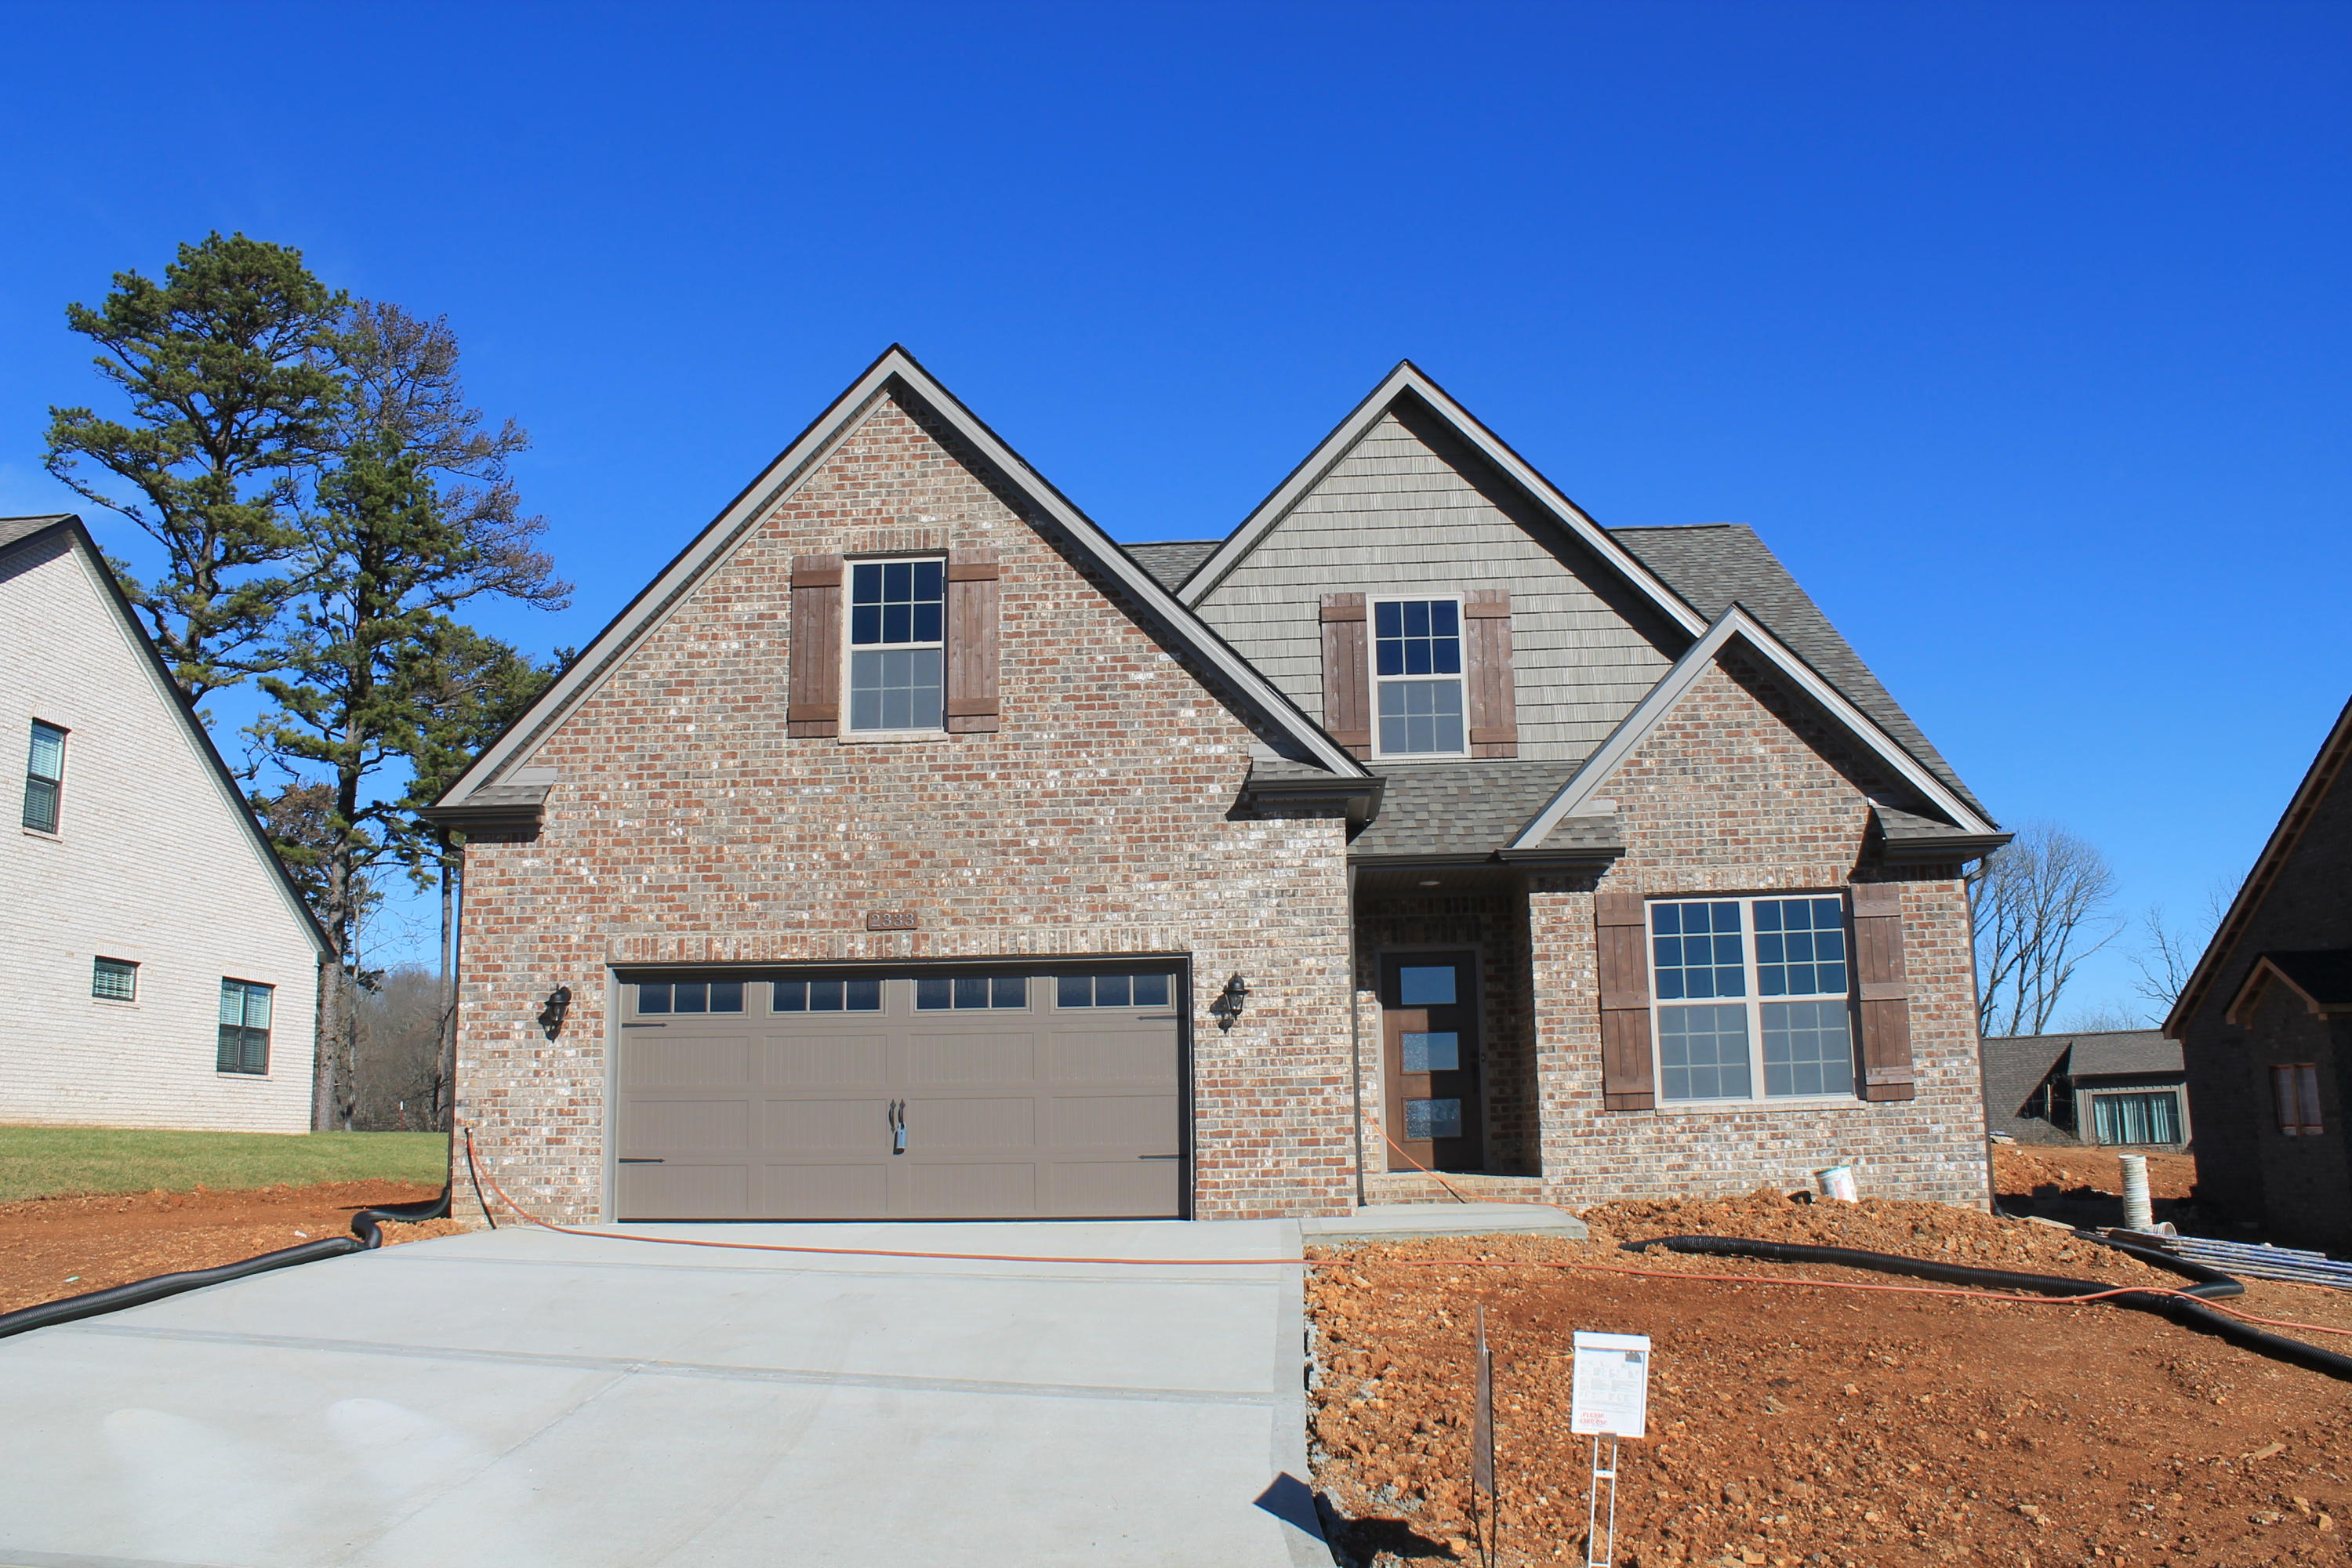 2333 Hickory Crest Lane Preview Image 1